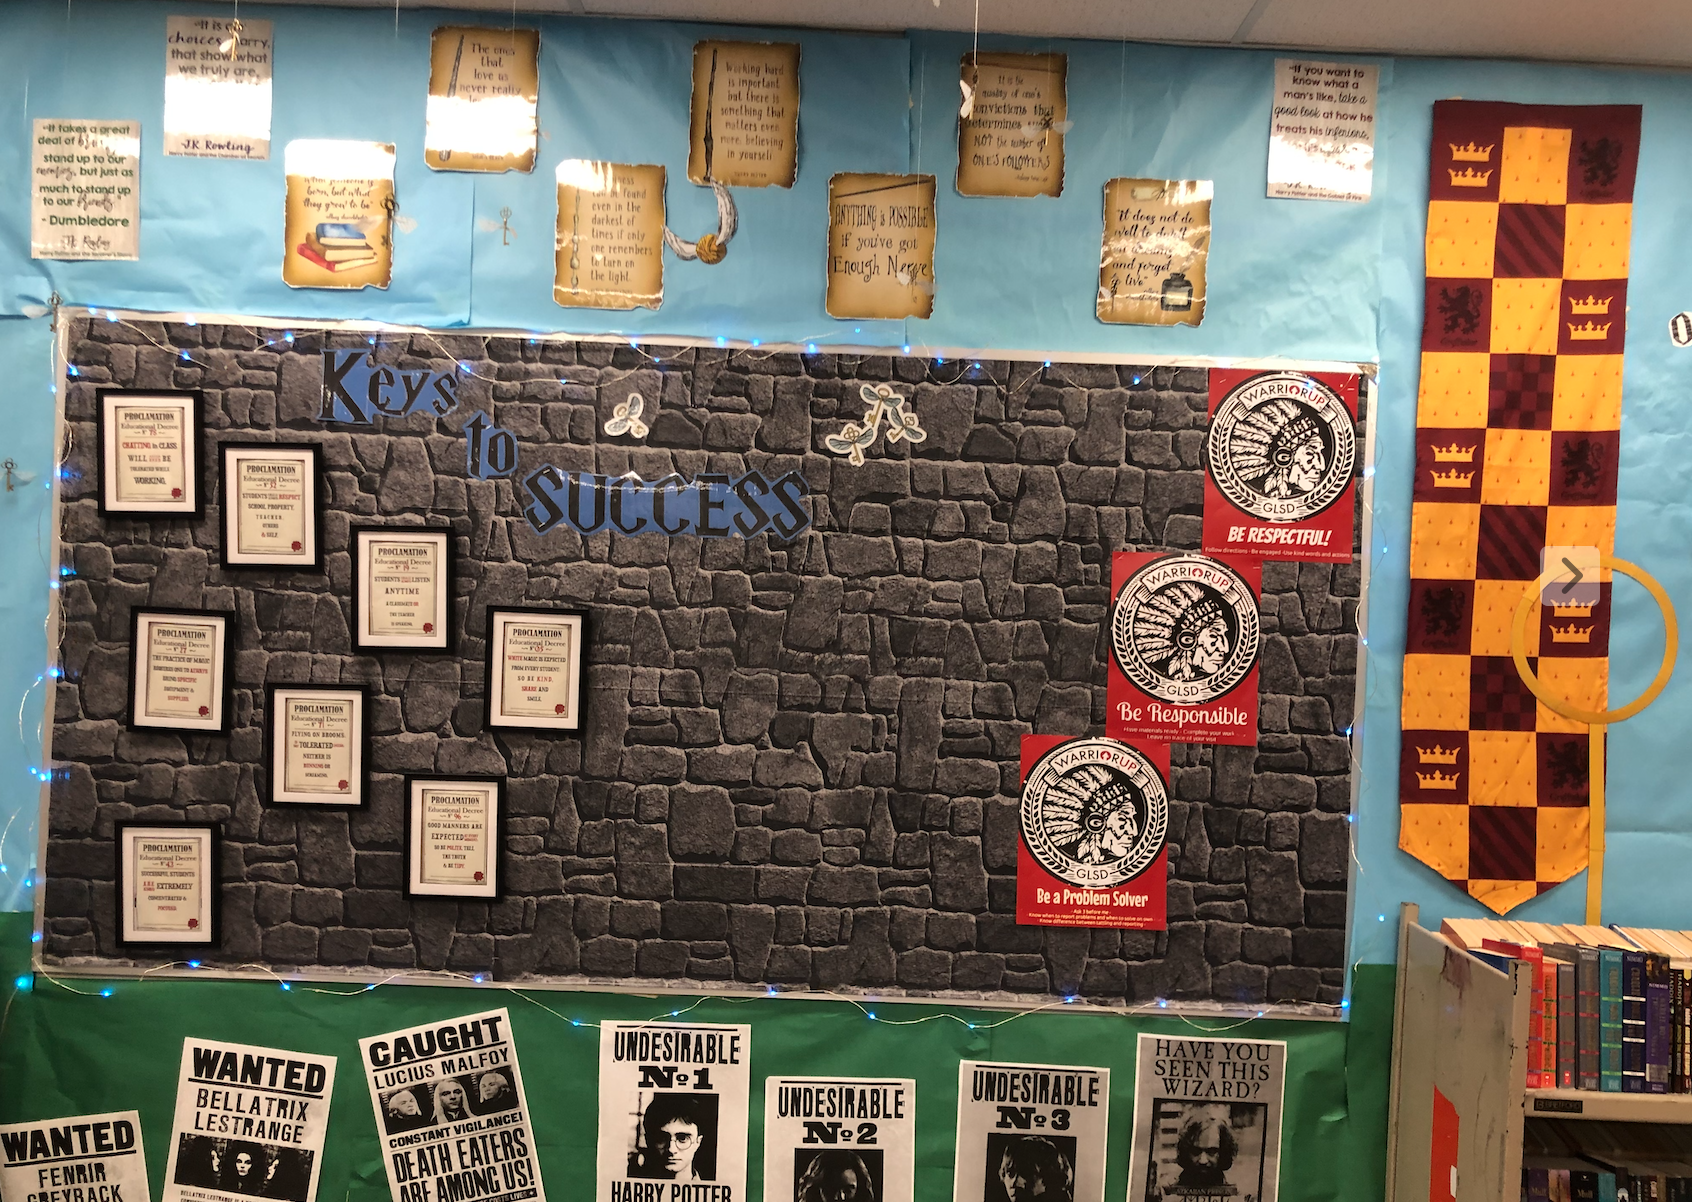 The bulletin board holds the Keys to your Success this year. It holds the Educational Decrees and the rules, as well as the 3 ways to Warrior Up!